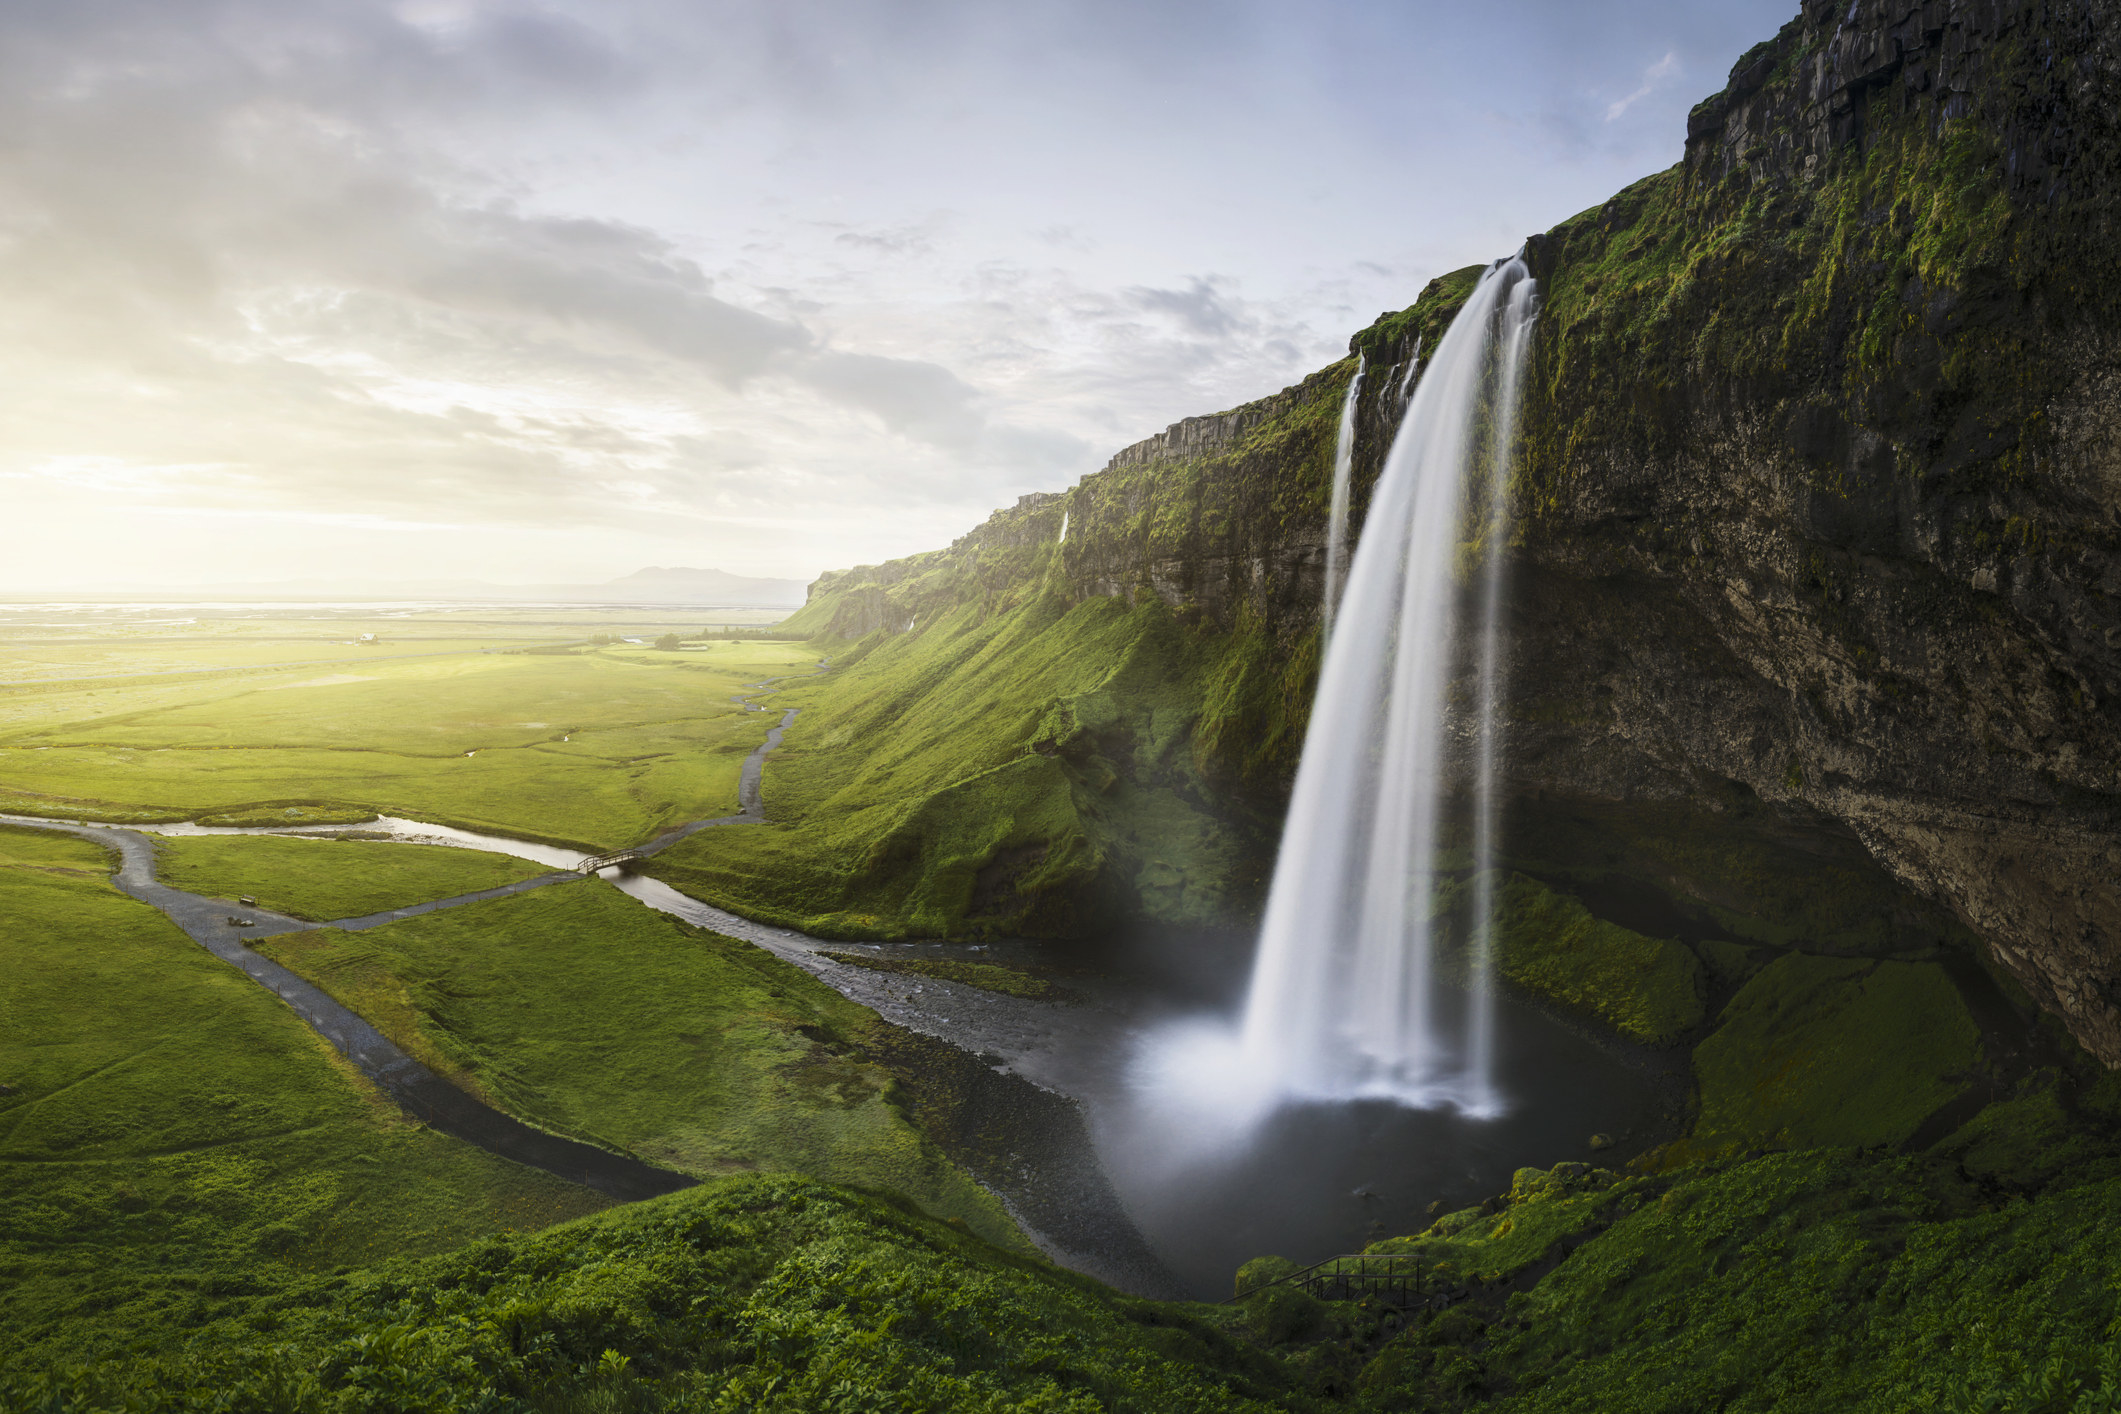 A waterfall surrounded by lush green landscape in Iceland.